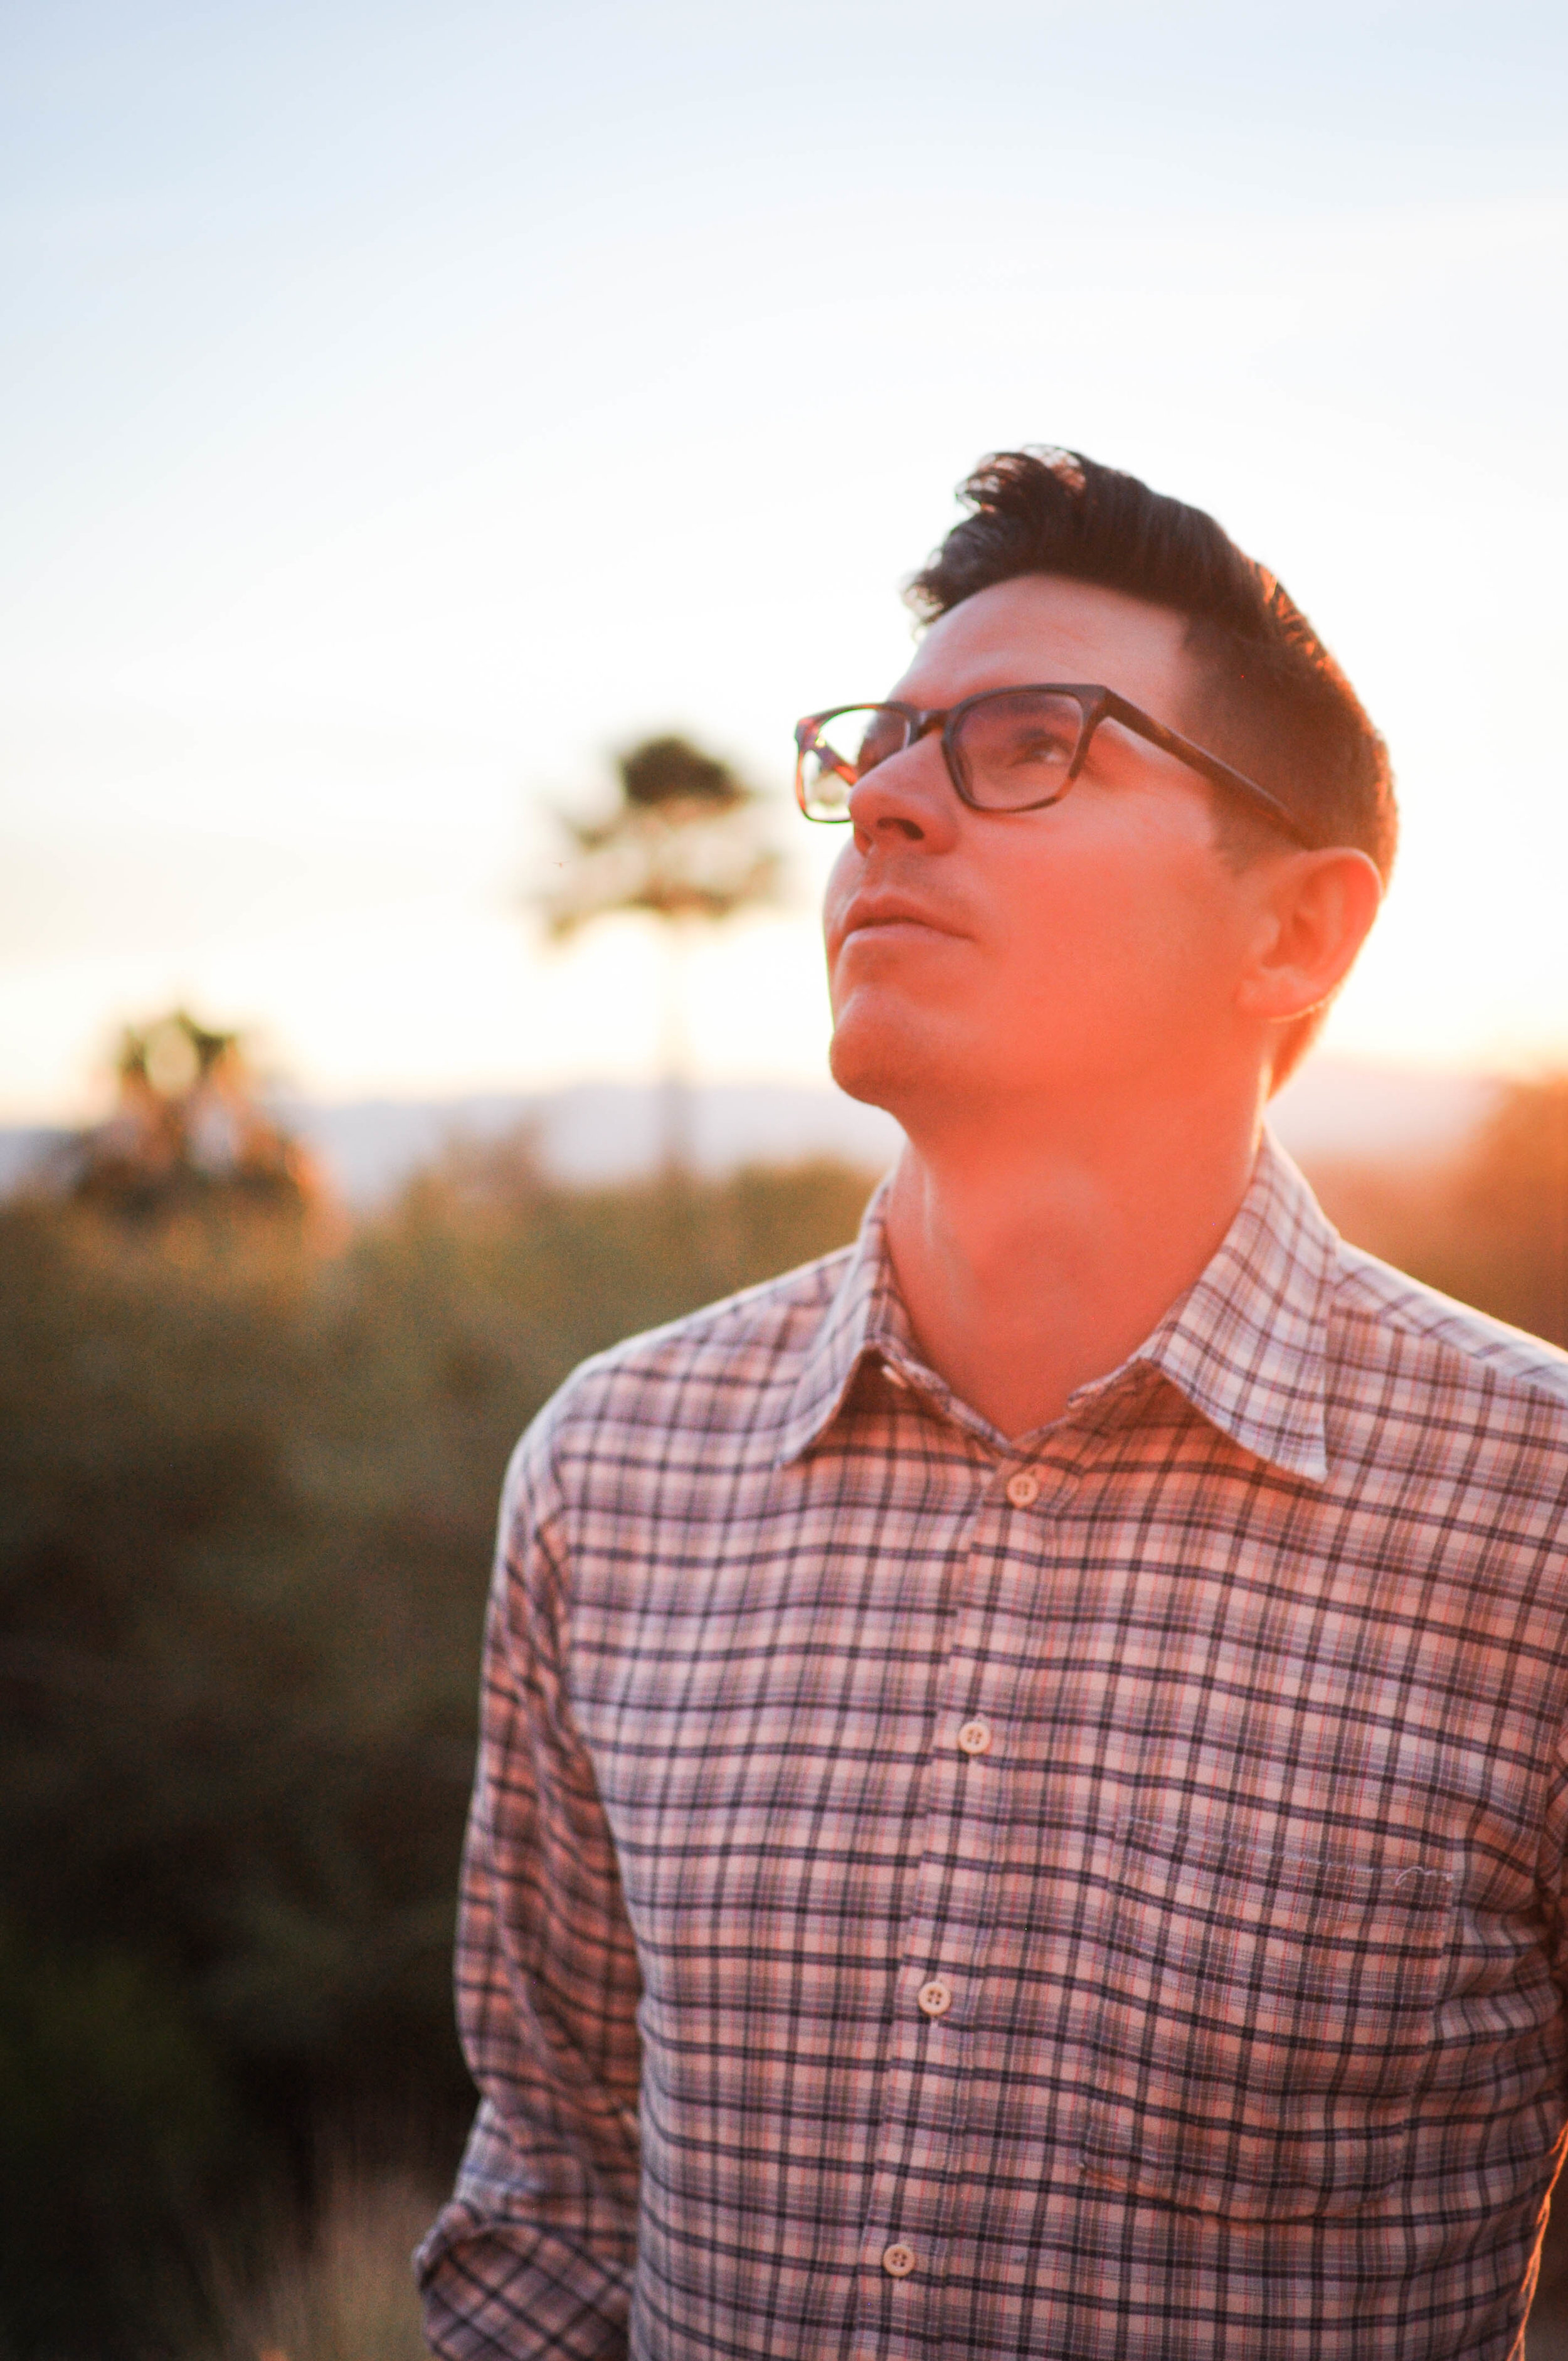 Man in glasses looking up at sunset